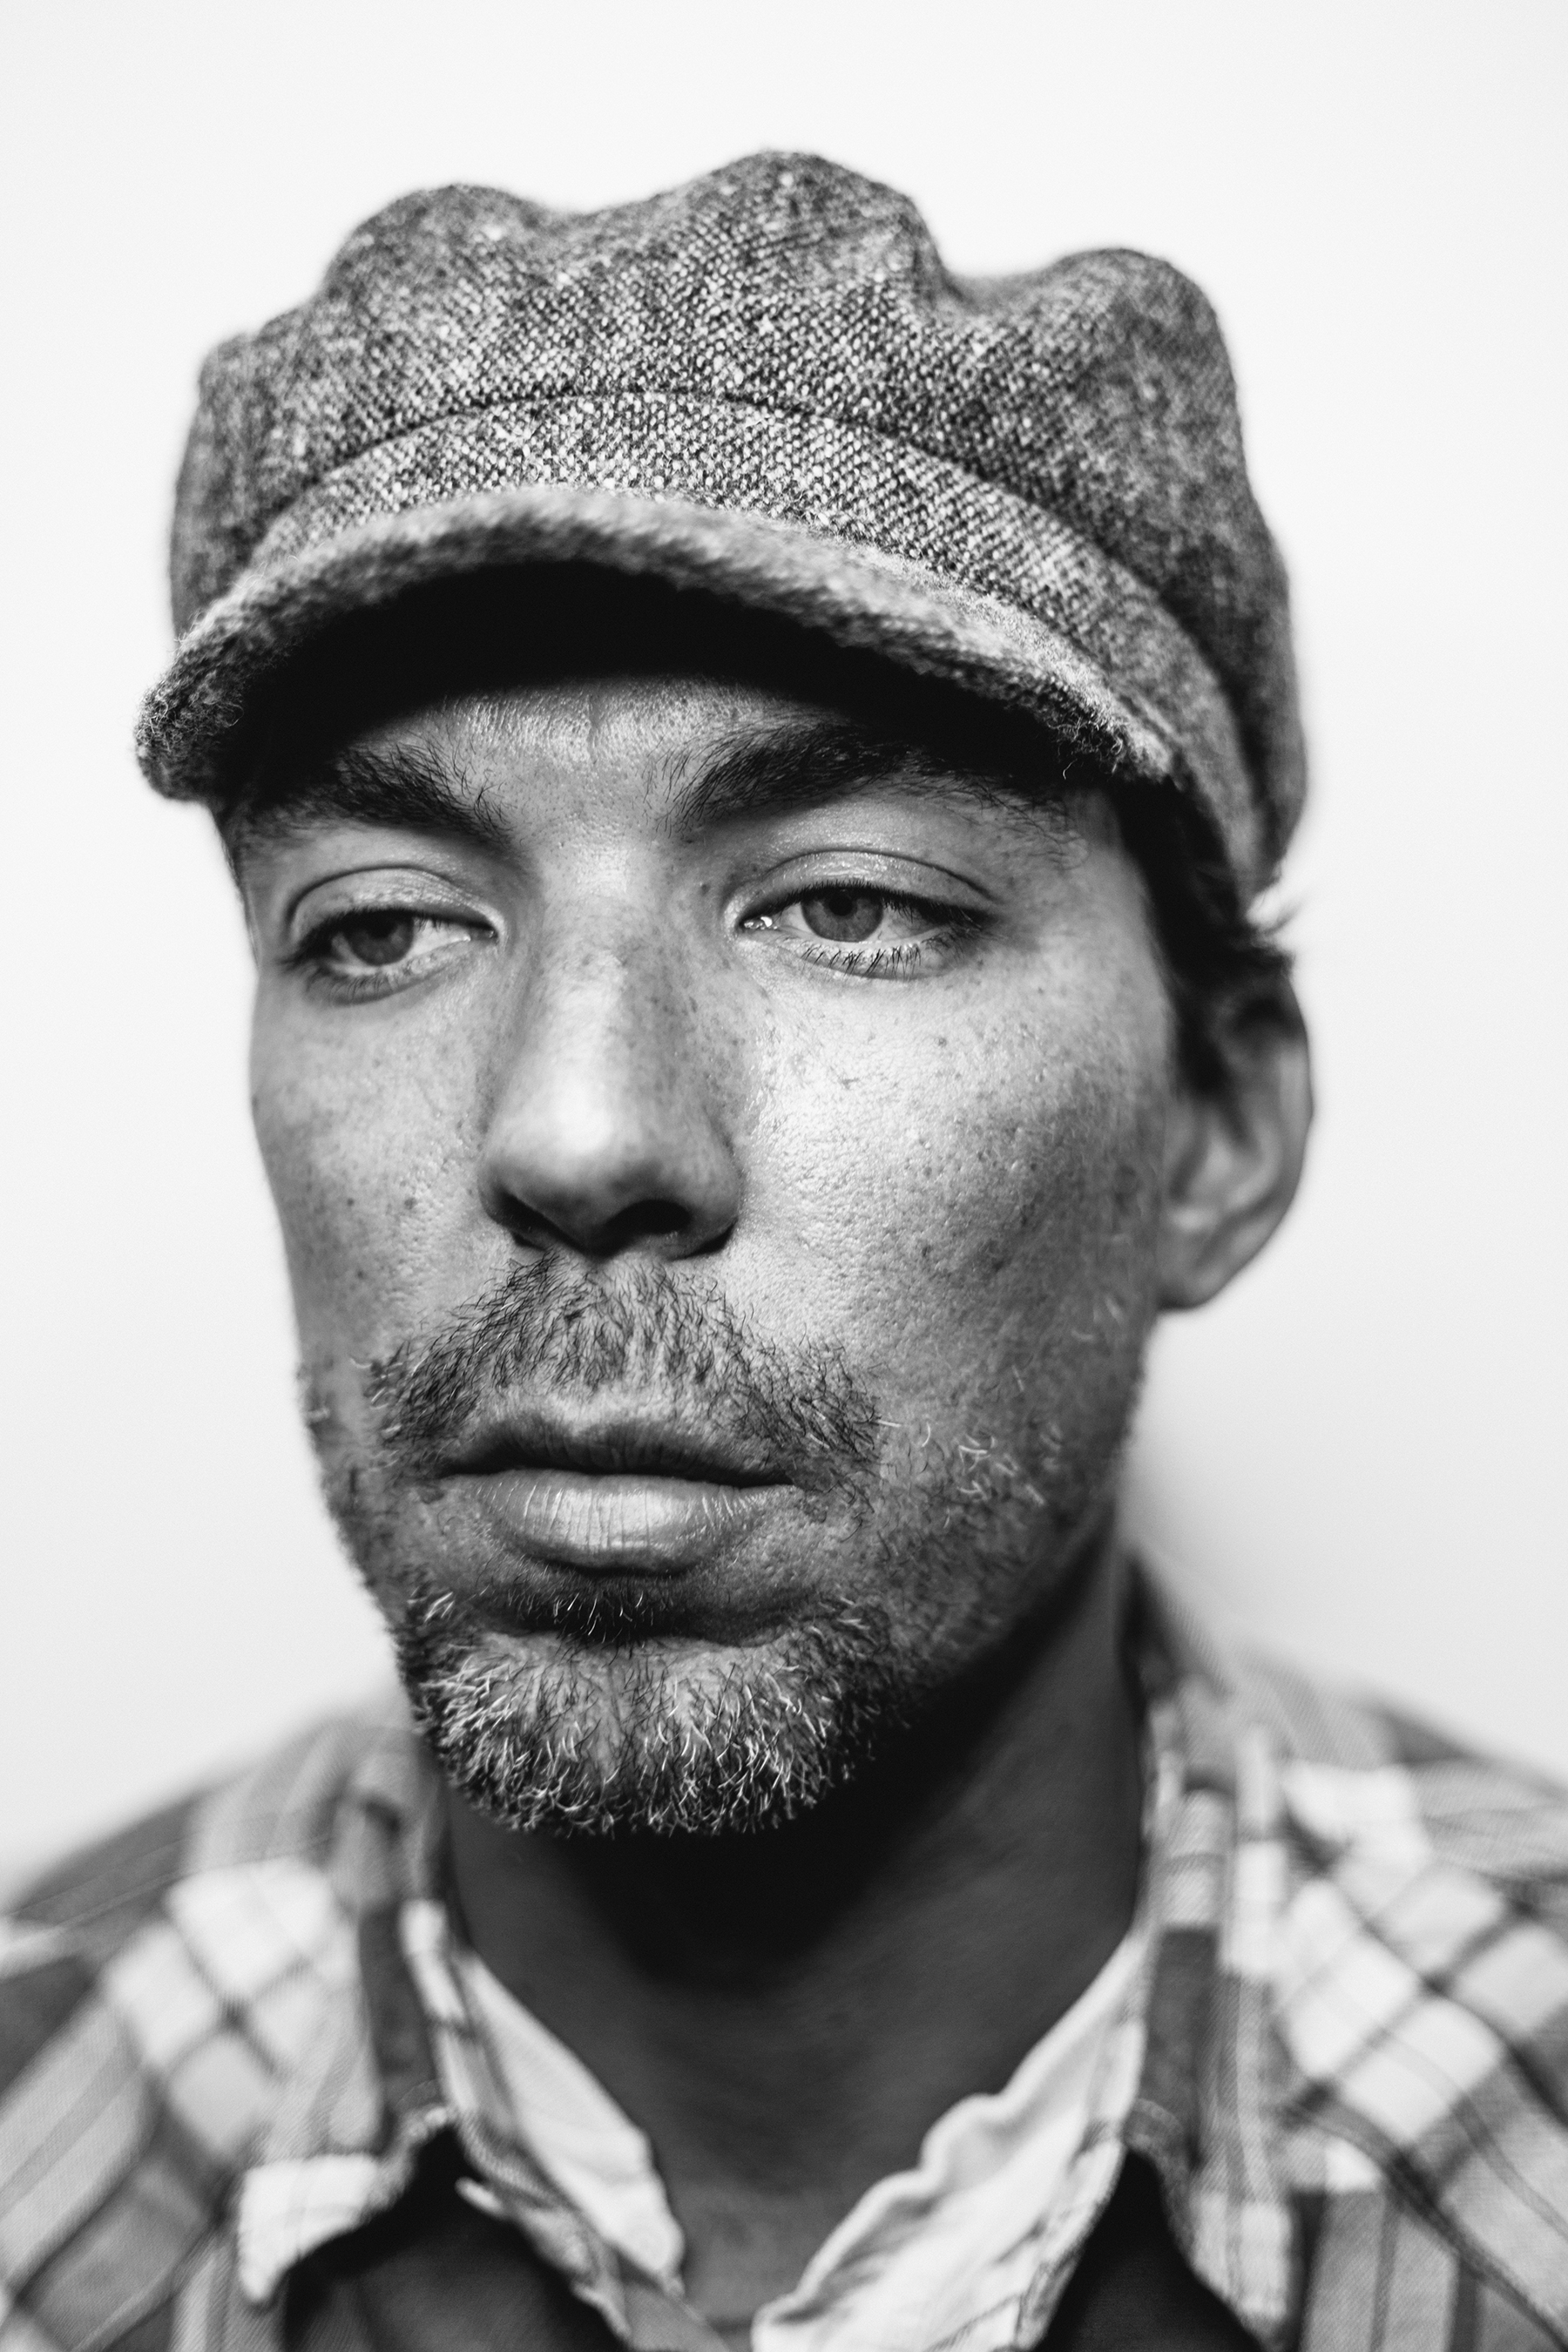 Justin Townes Earle in 2019.